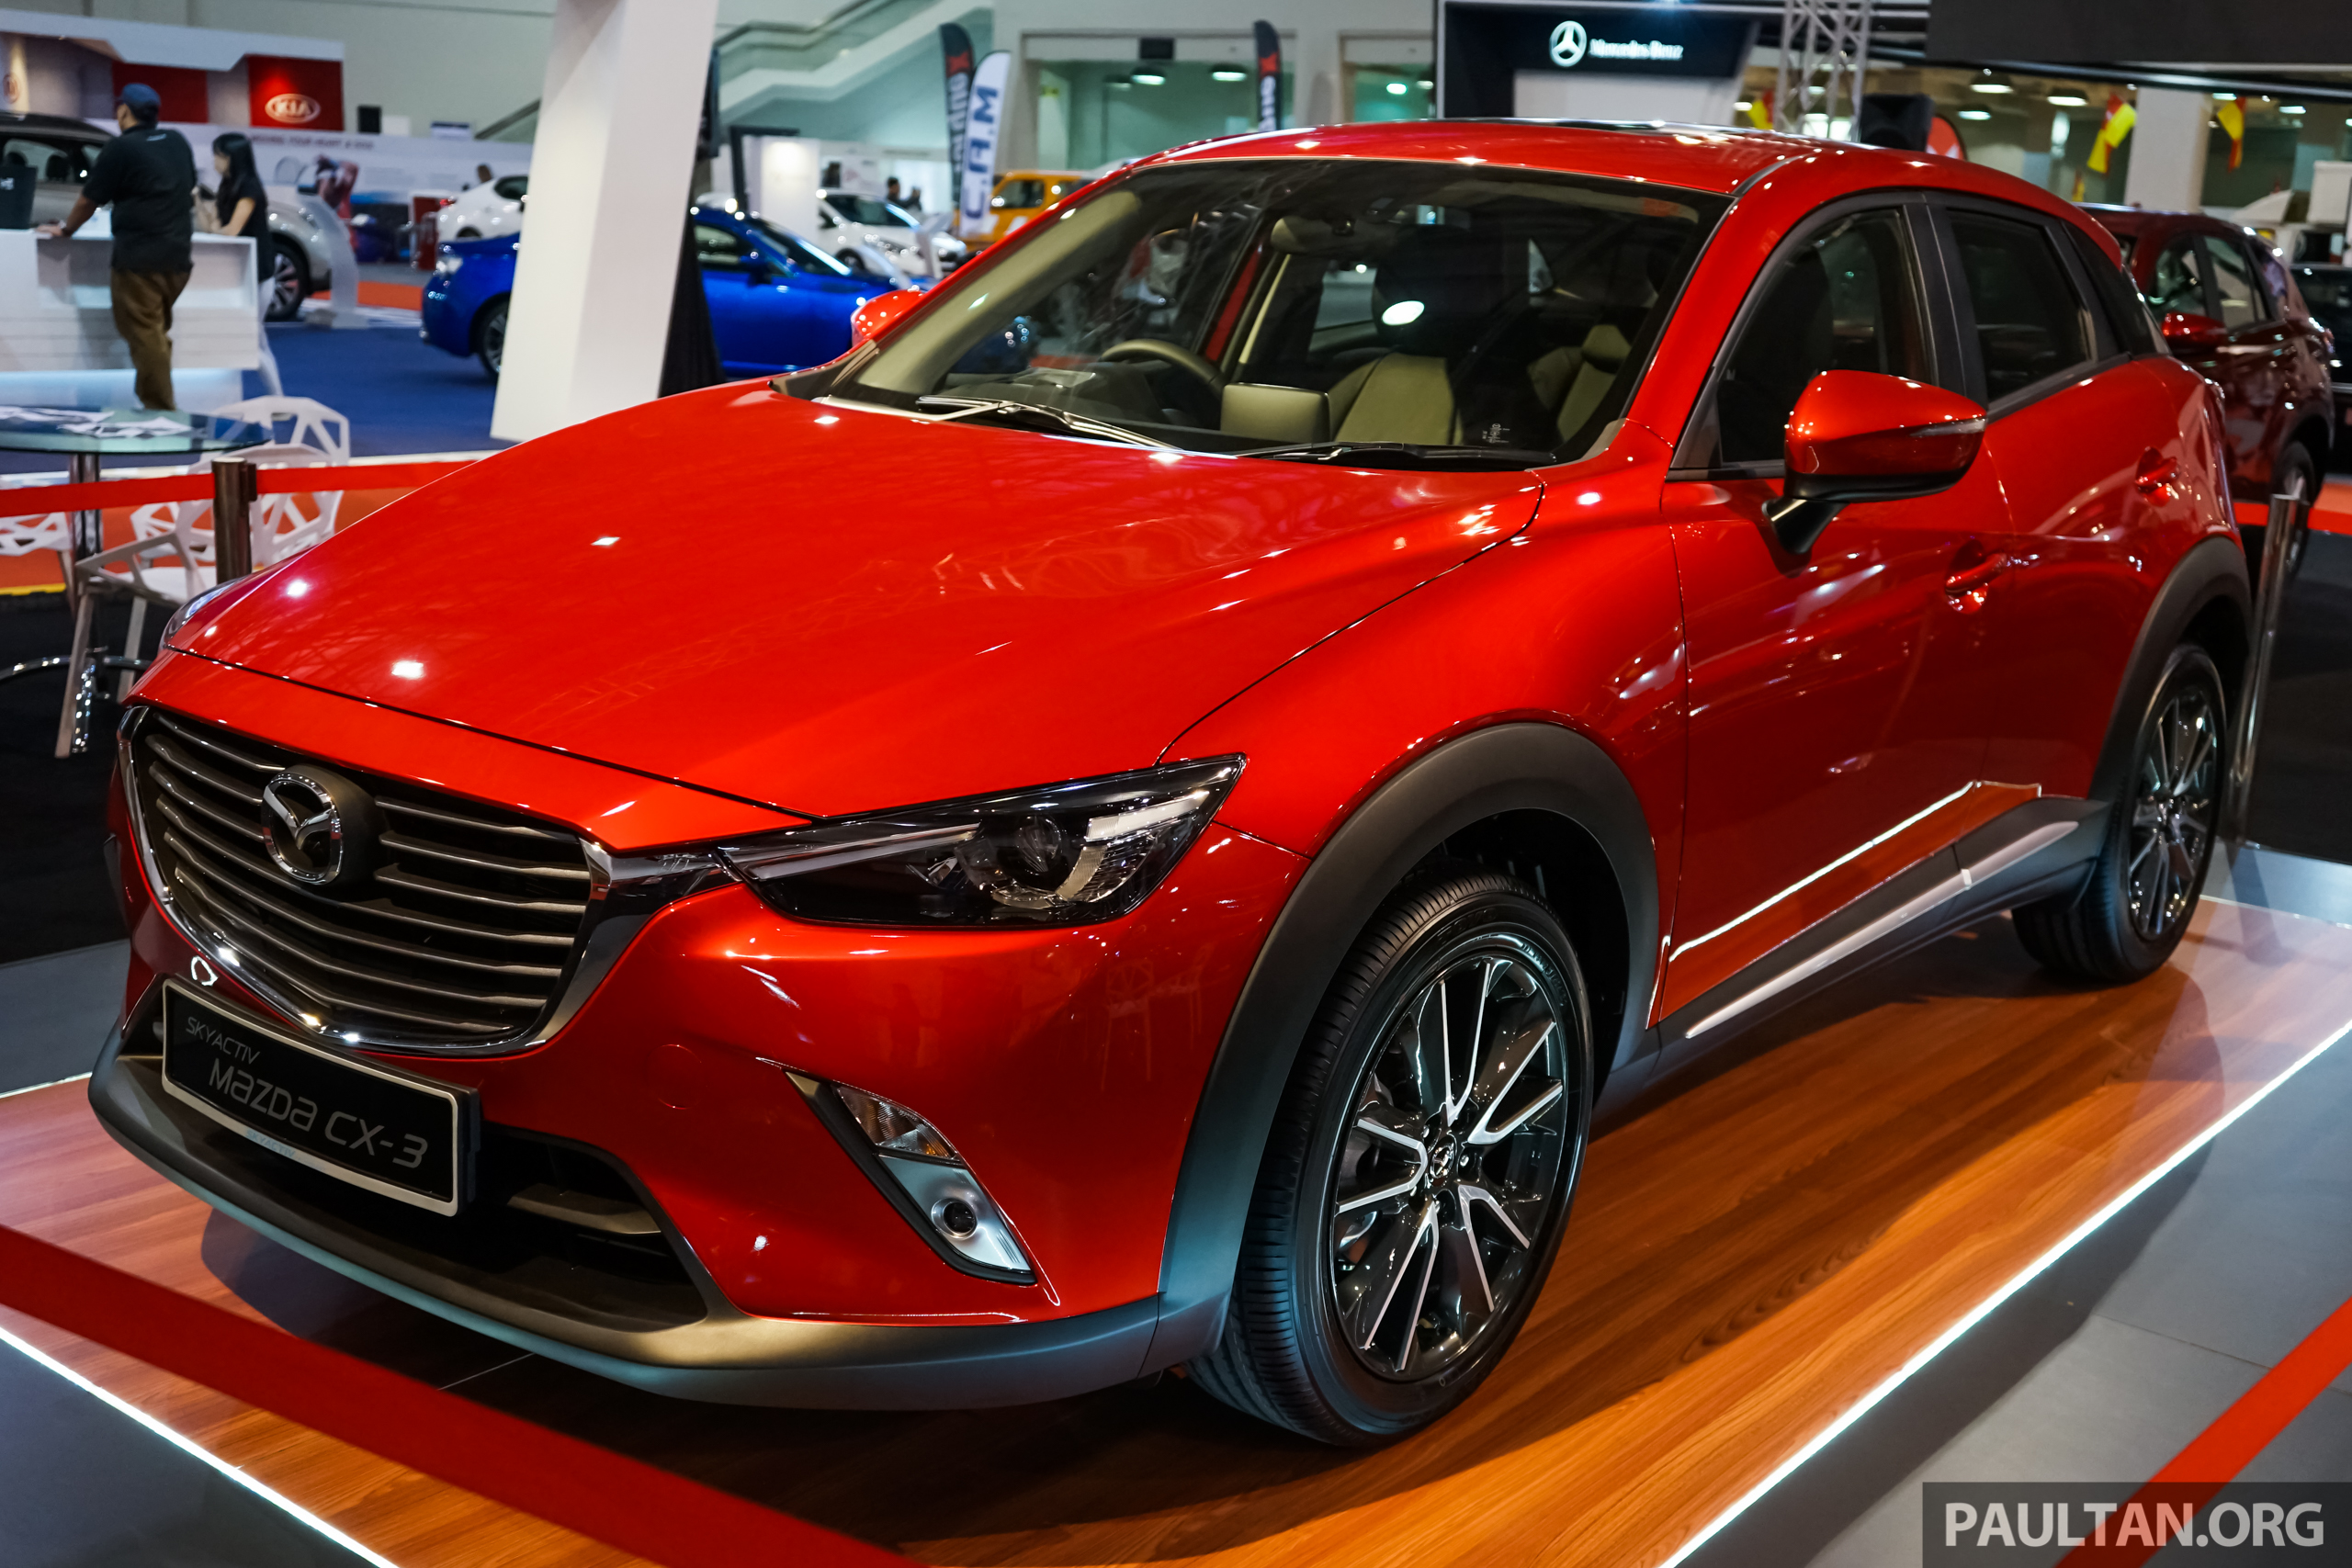 mazda cx 3 malaysian price list revealed rm131k. Black Bedroom Furniture Sets. Home Design Ideas